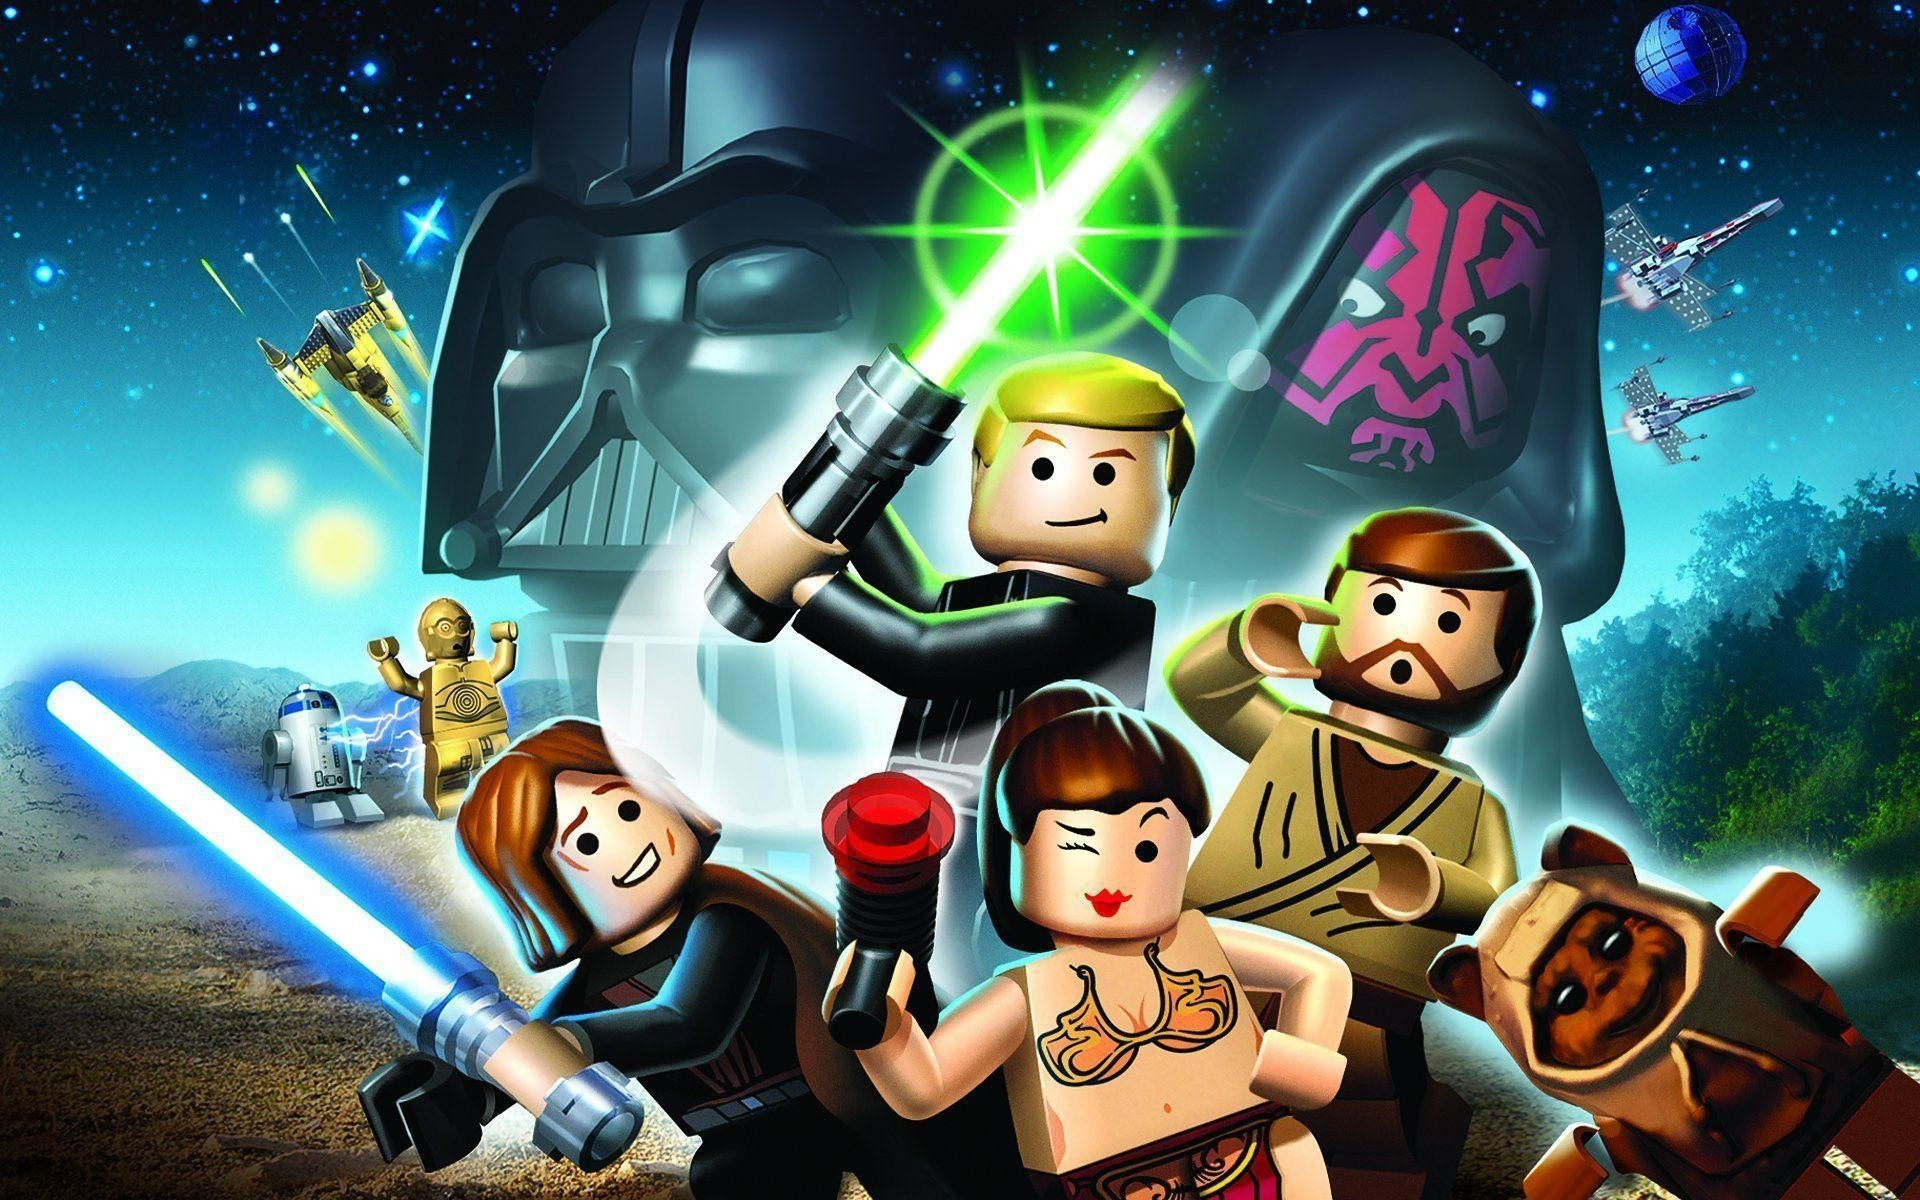 1920x1200  Most Downloaded Lego Star Wars Wallpapers - Full HD wallpaper  search